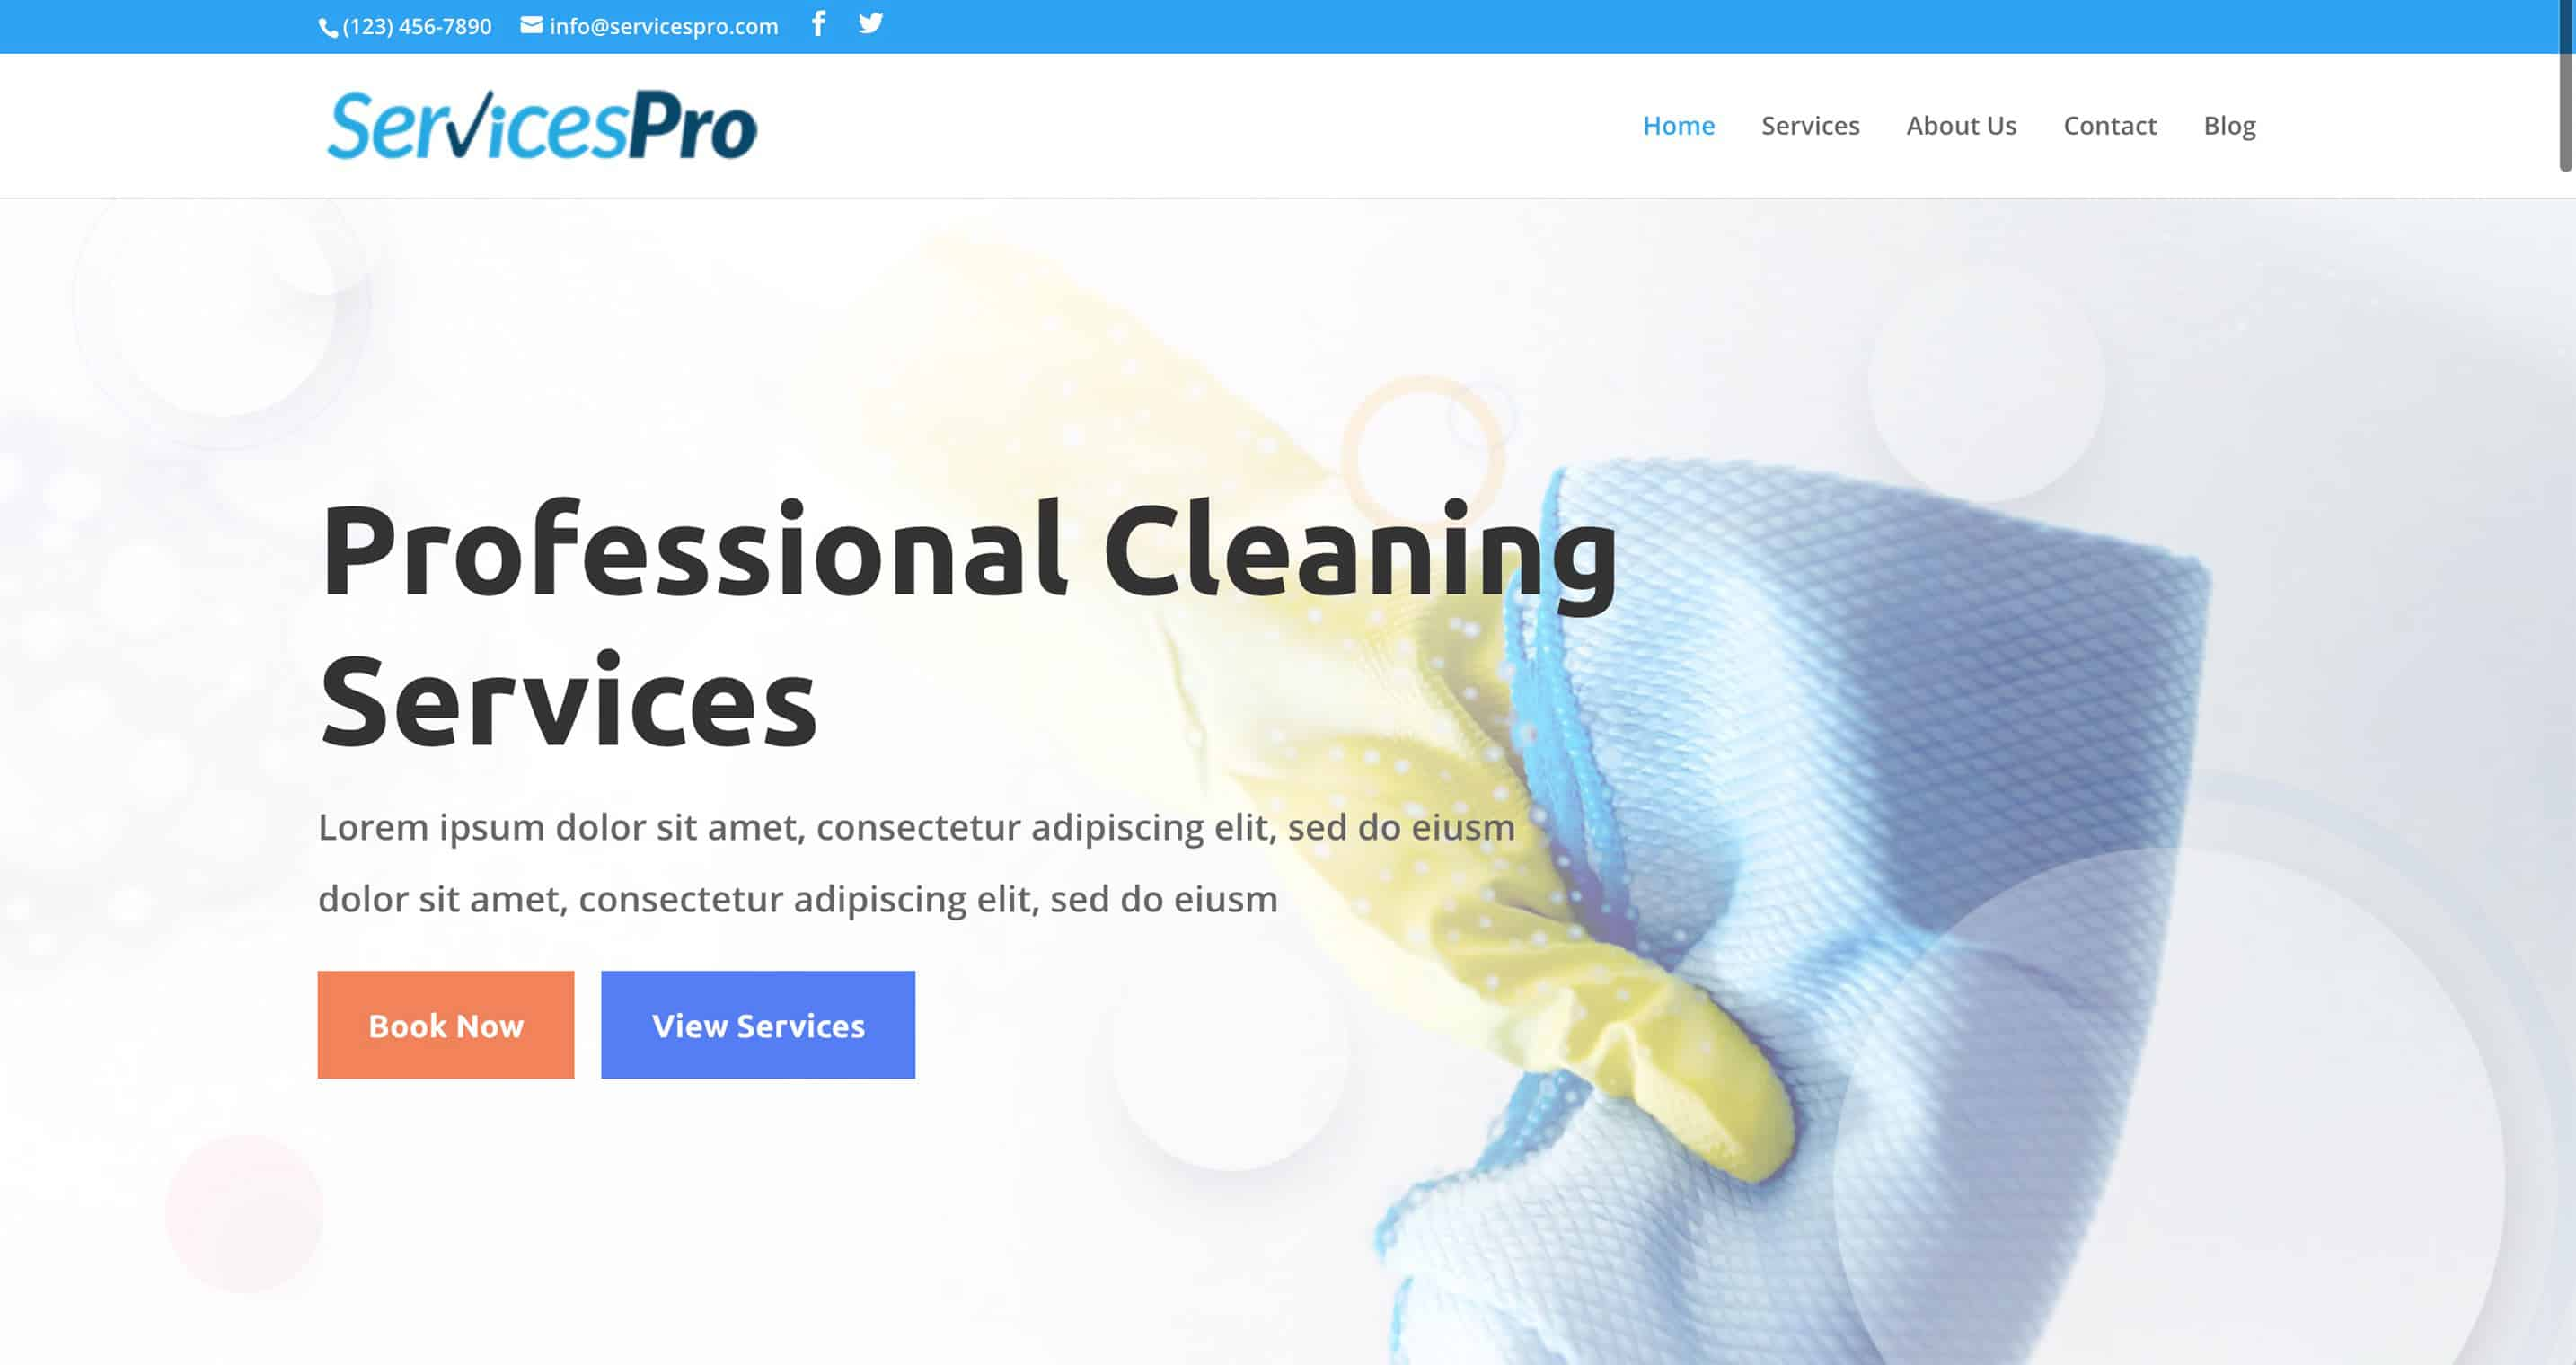 Services Pro Landscaping and Lawn Care Website